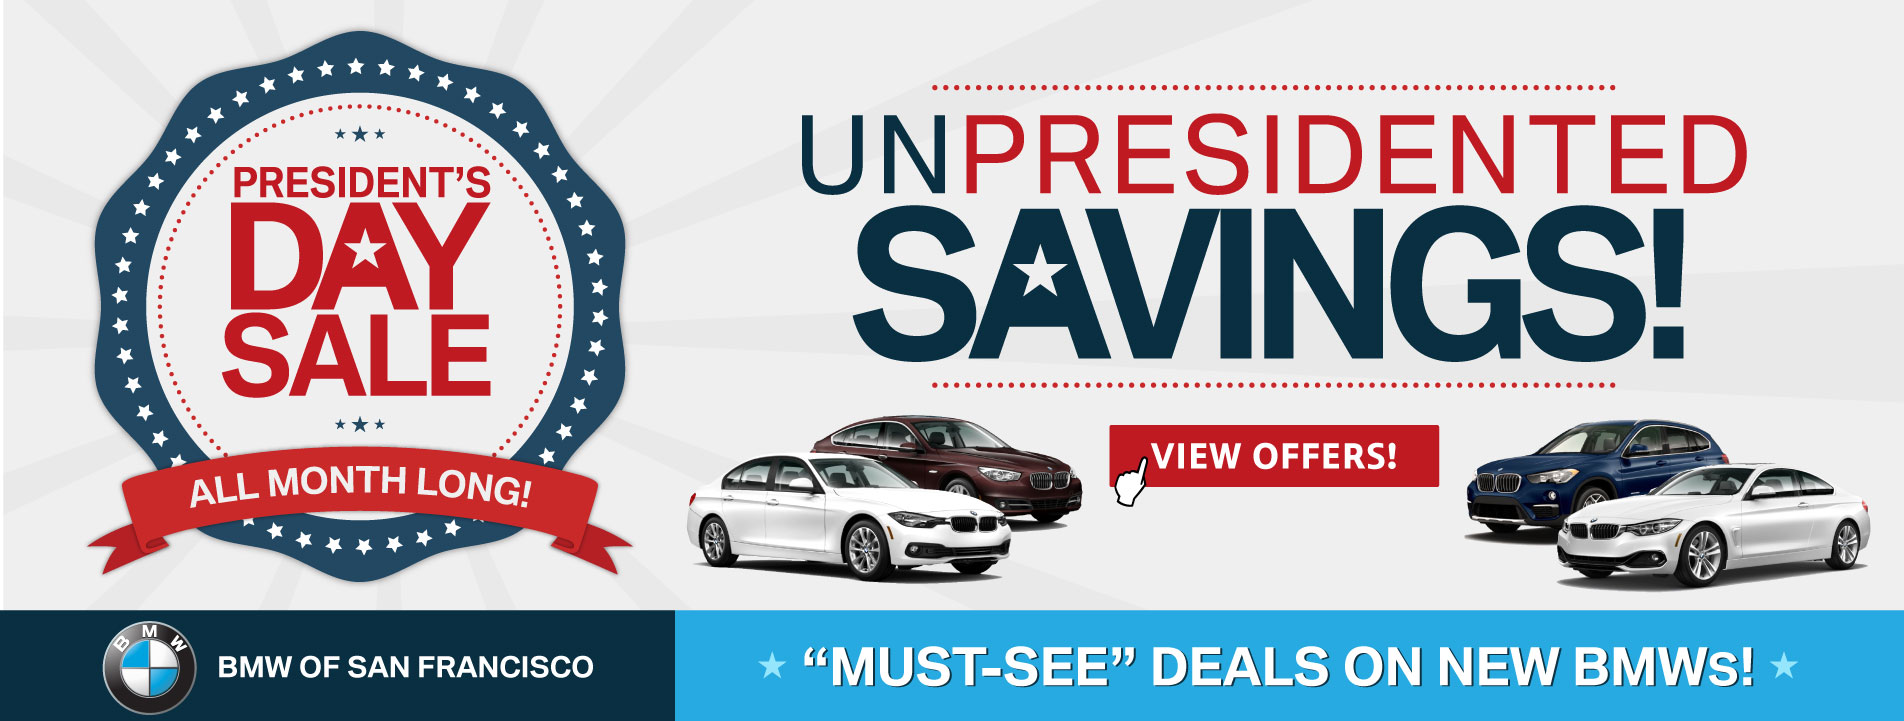 Presidents Day Sale at BMW of San Francisco